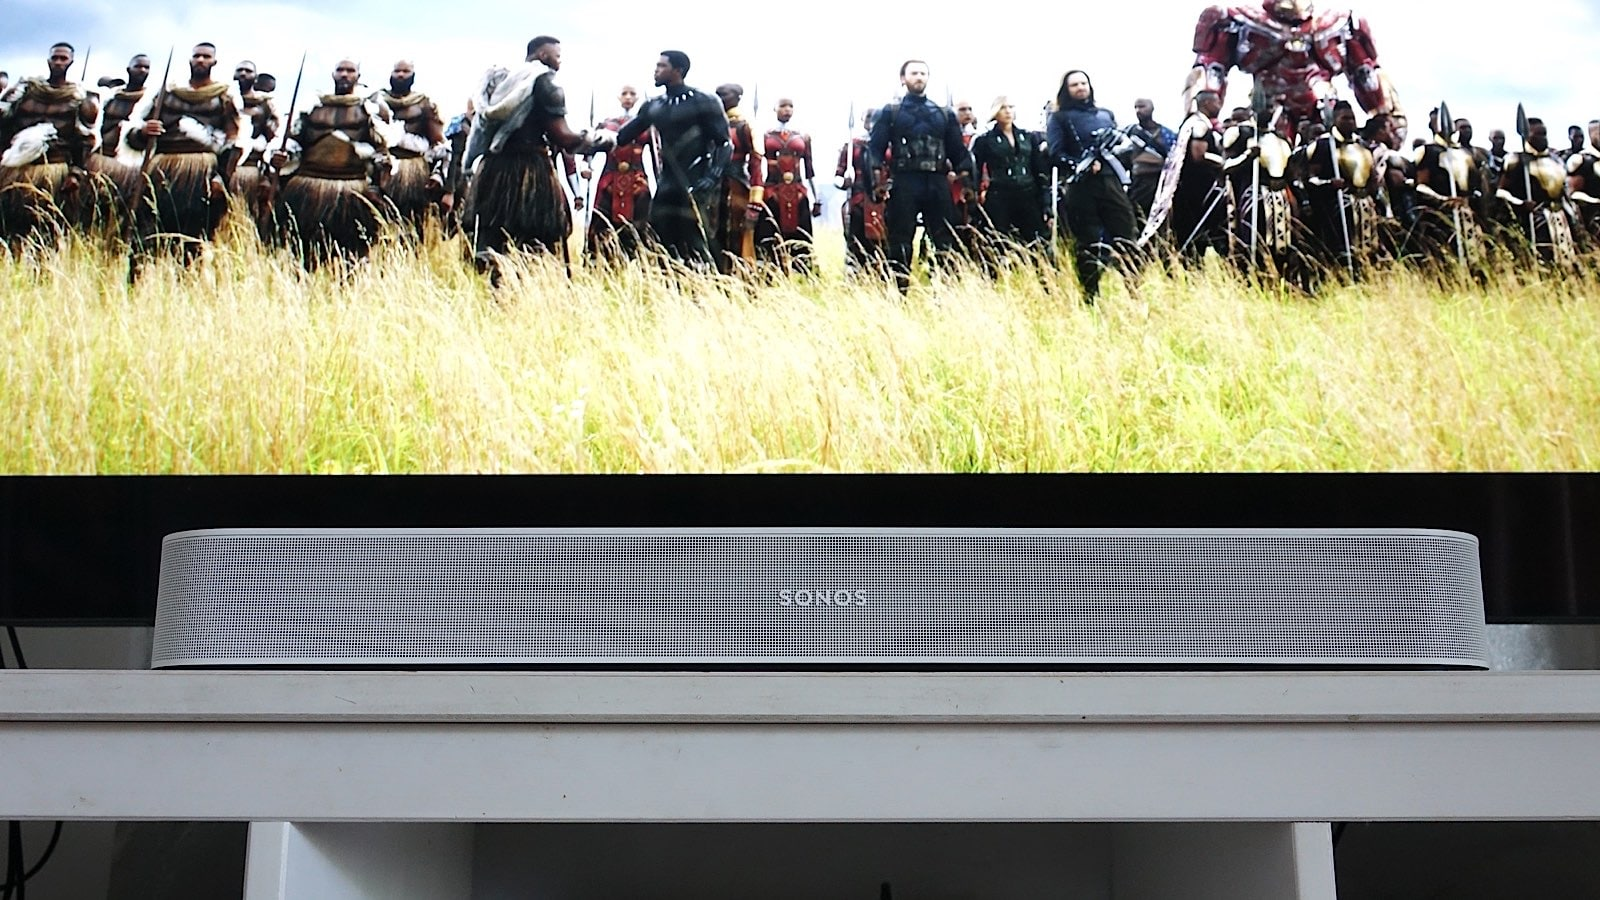 Listening to the 2021 Sonos Beam while watching The Avengers